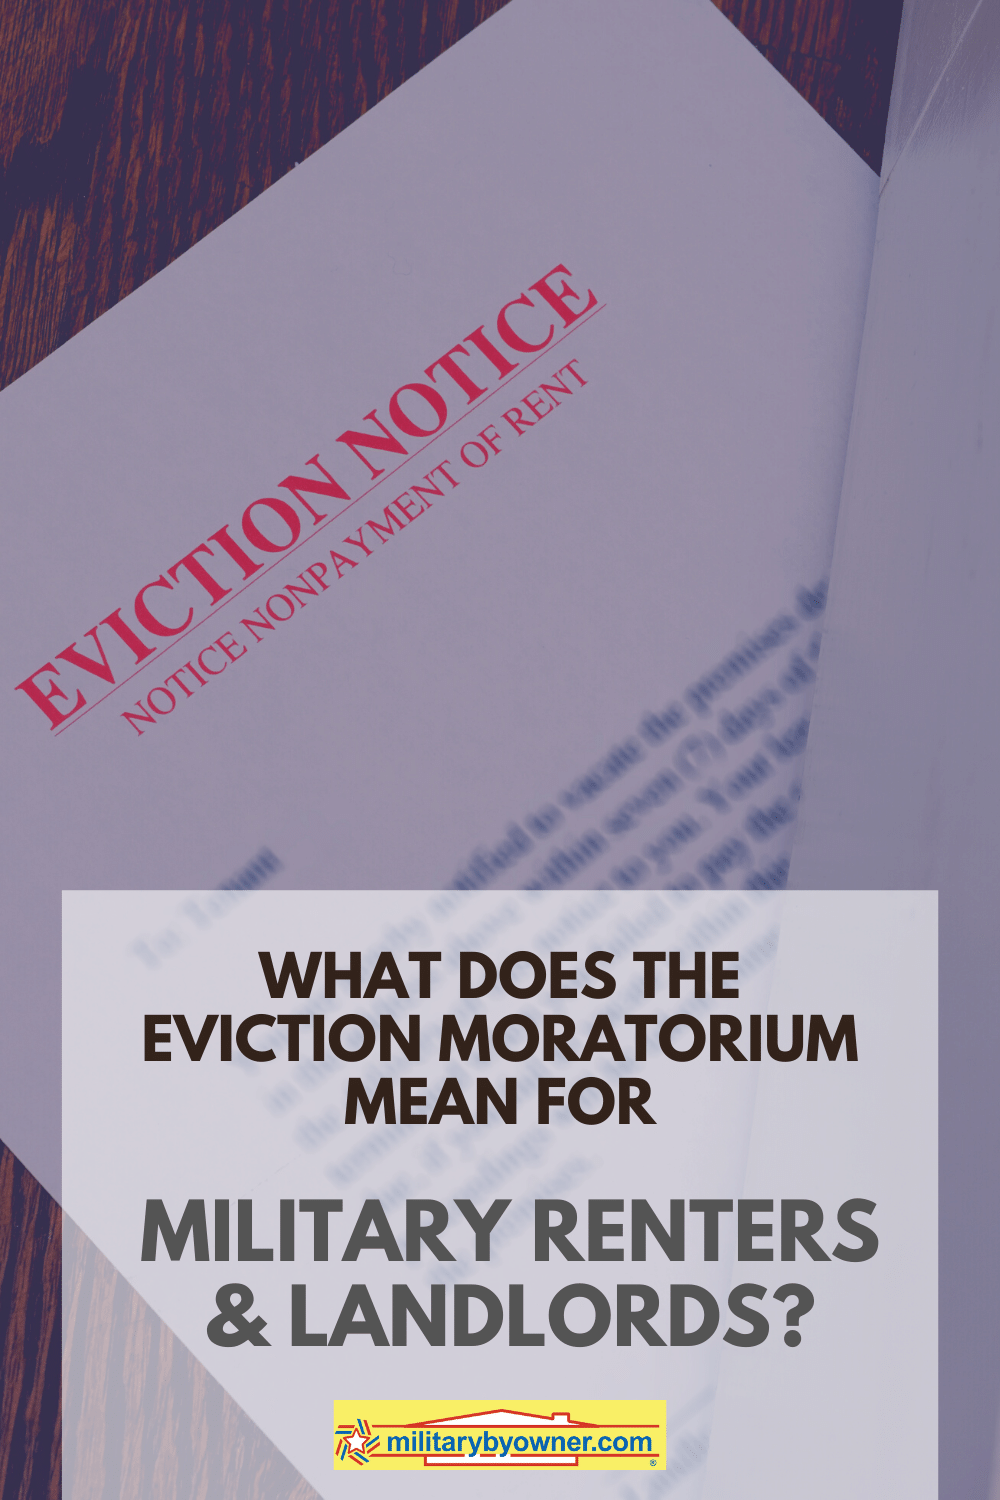 What Does the Eviction Moratorium Mean for Military Renters & Landlords_